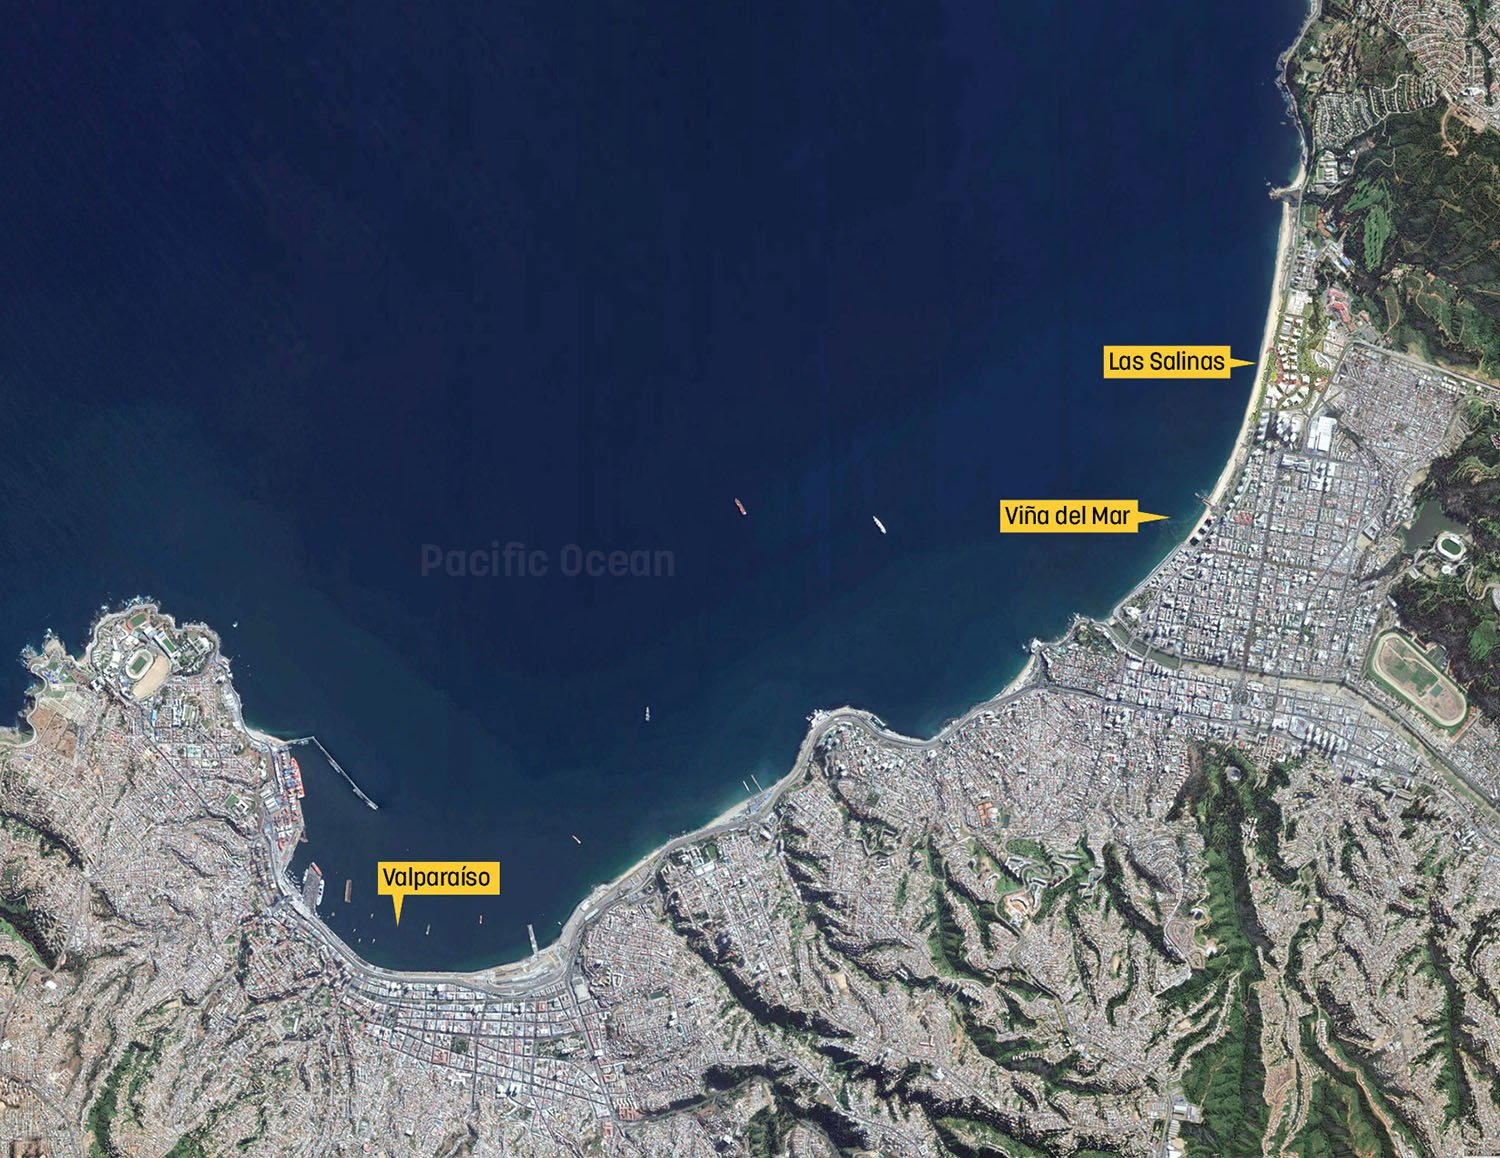 Project in the context of Vina del Mar and Valparaiso